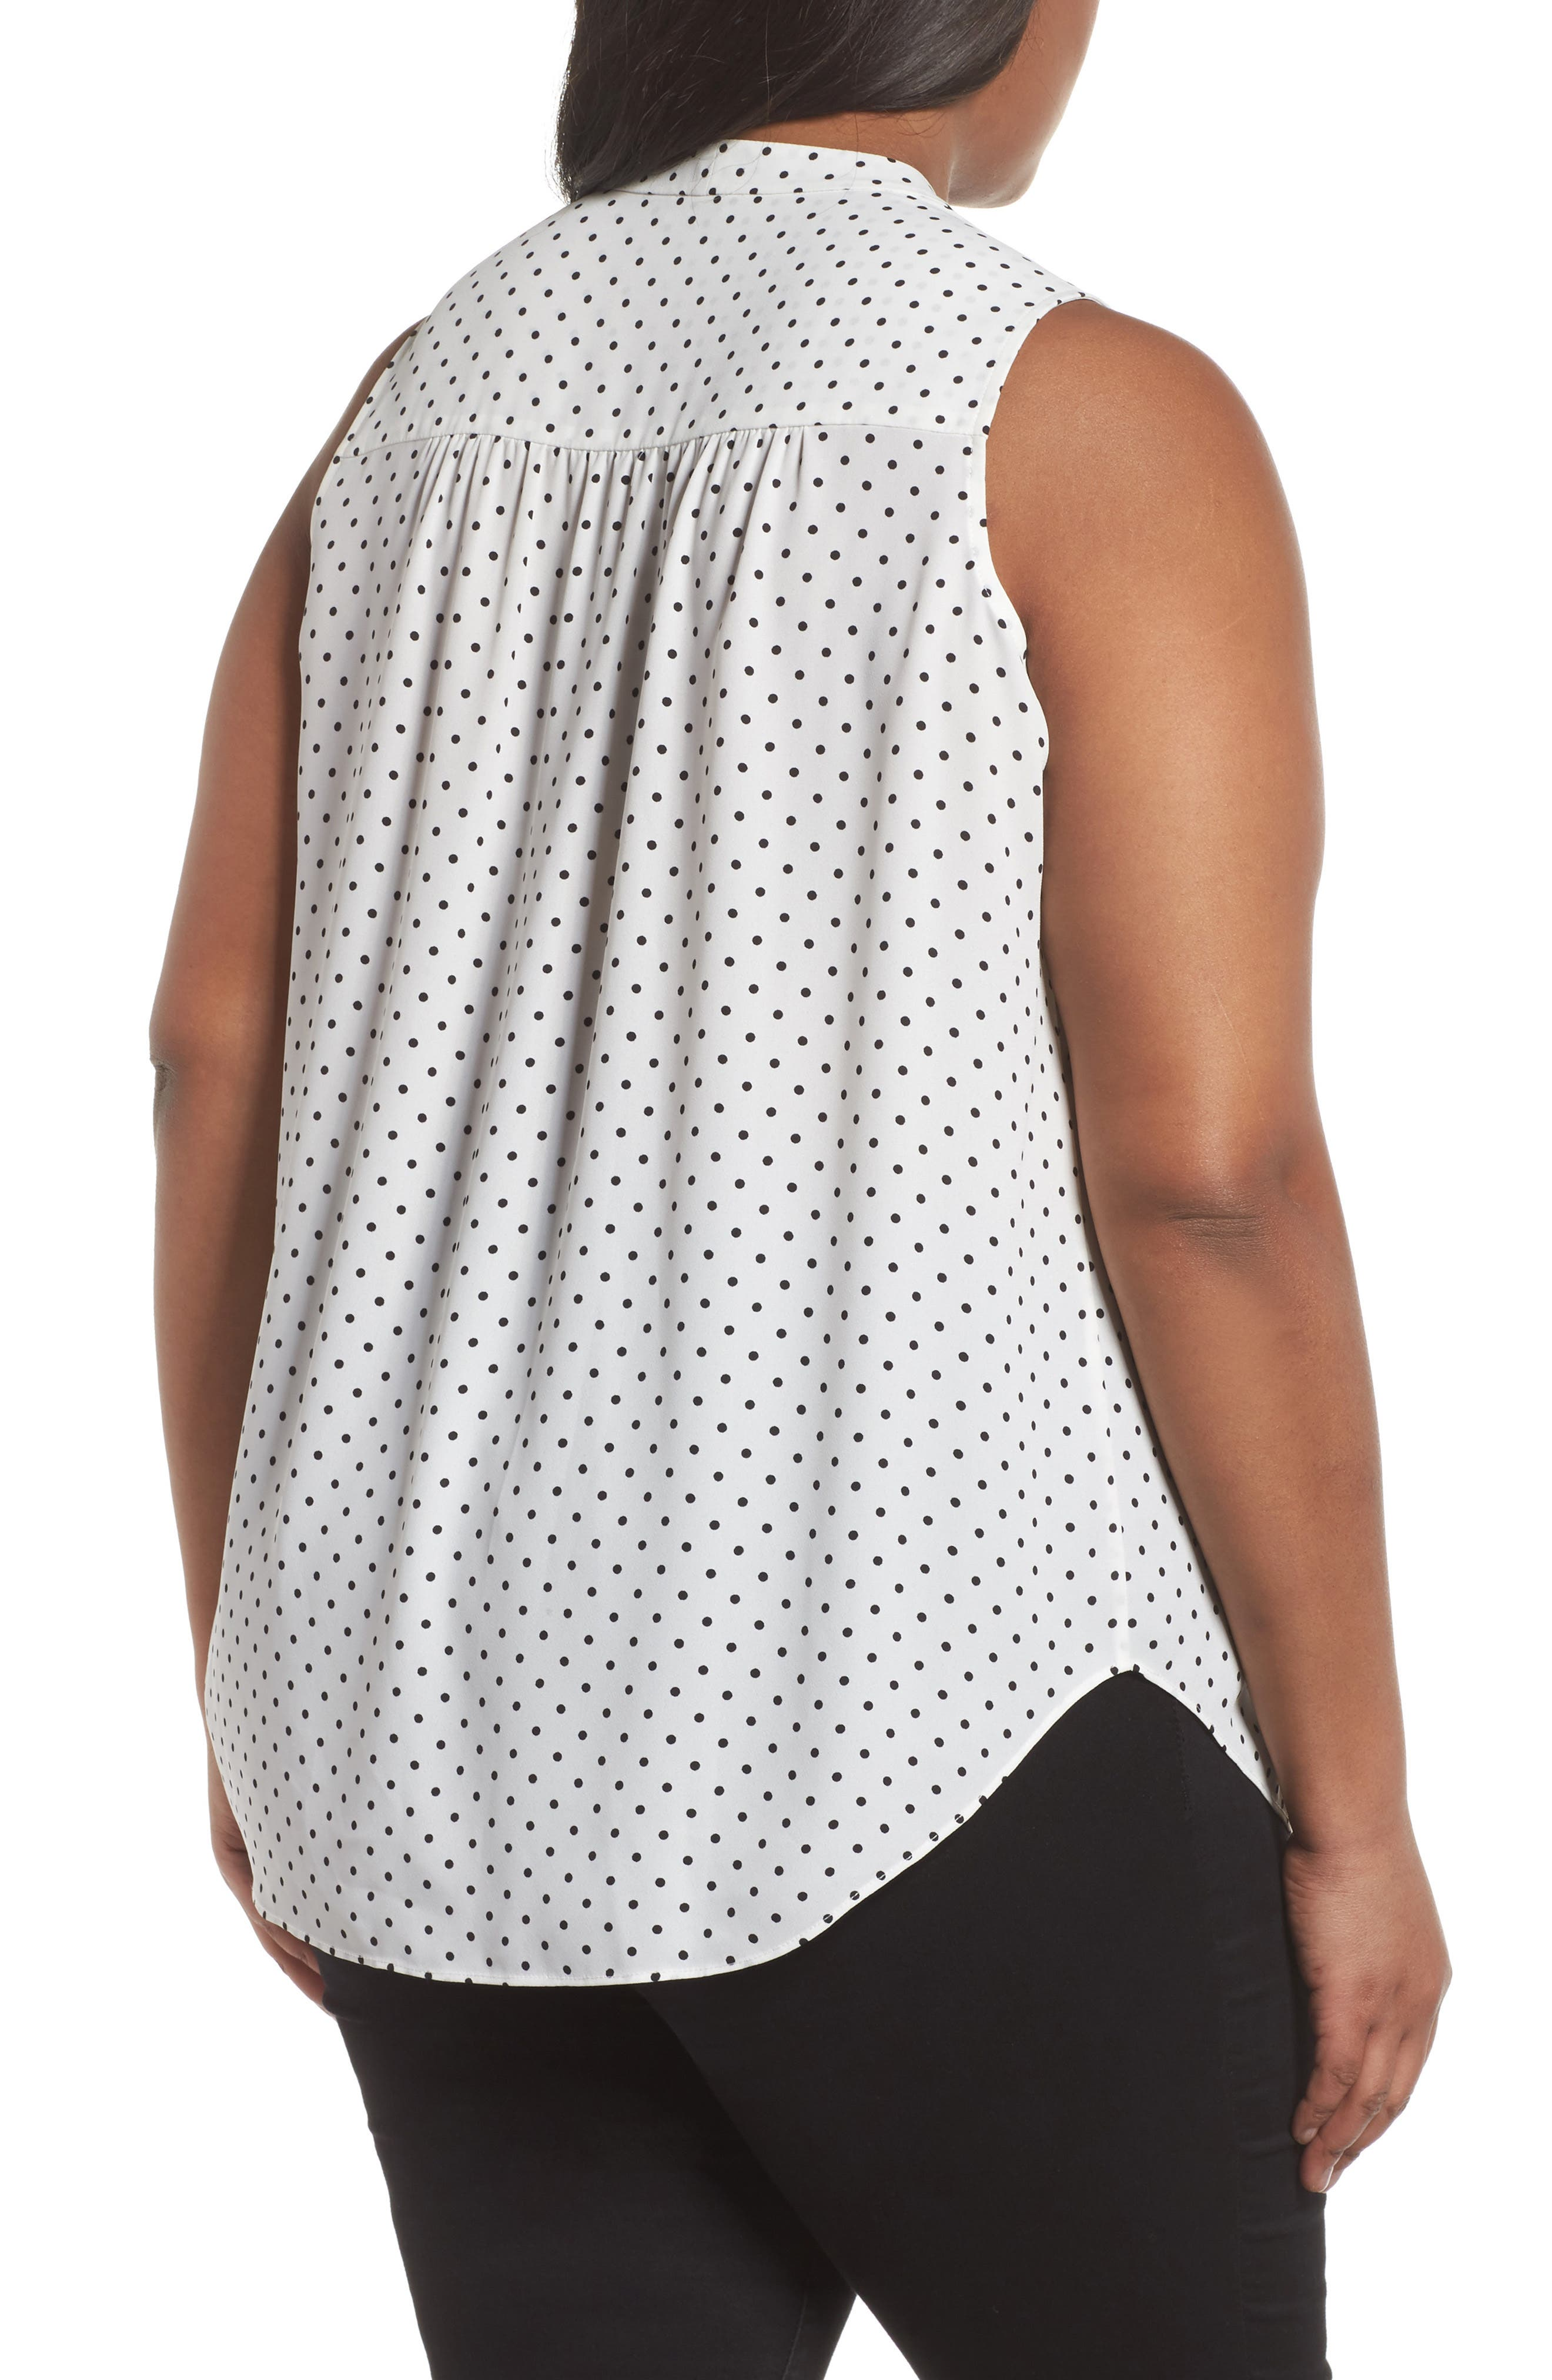 Poetic Dots Sleeveless V-Neck Blouse,                             Alternate thumbnail 2, color,                             903